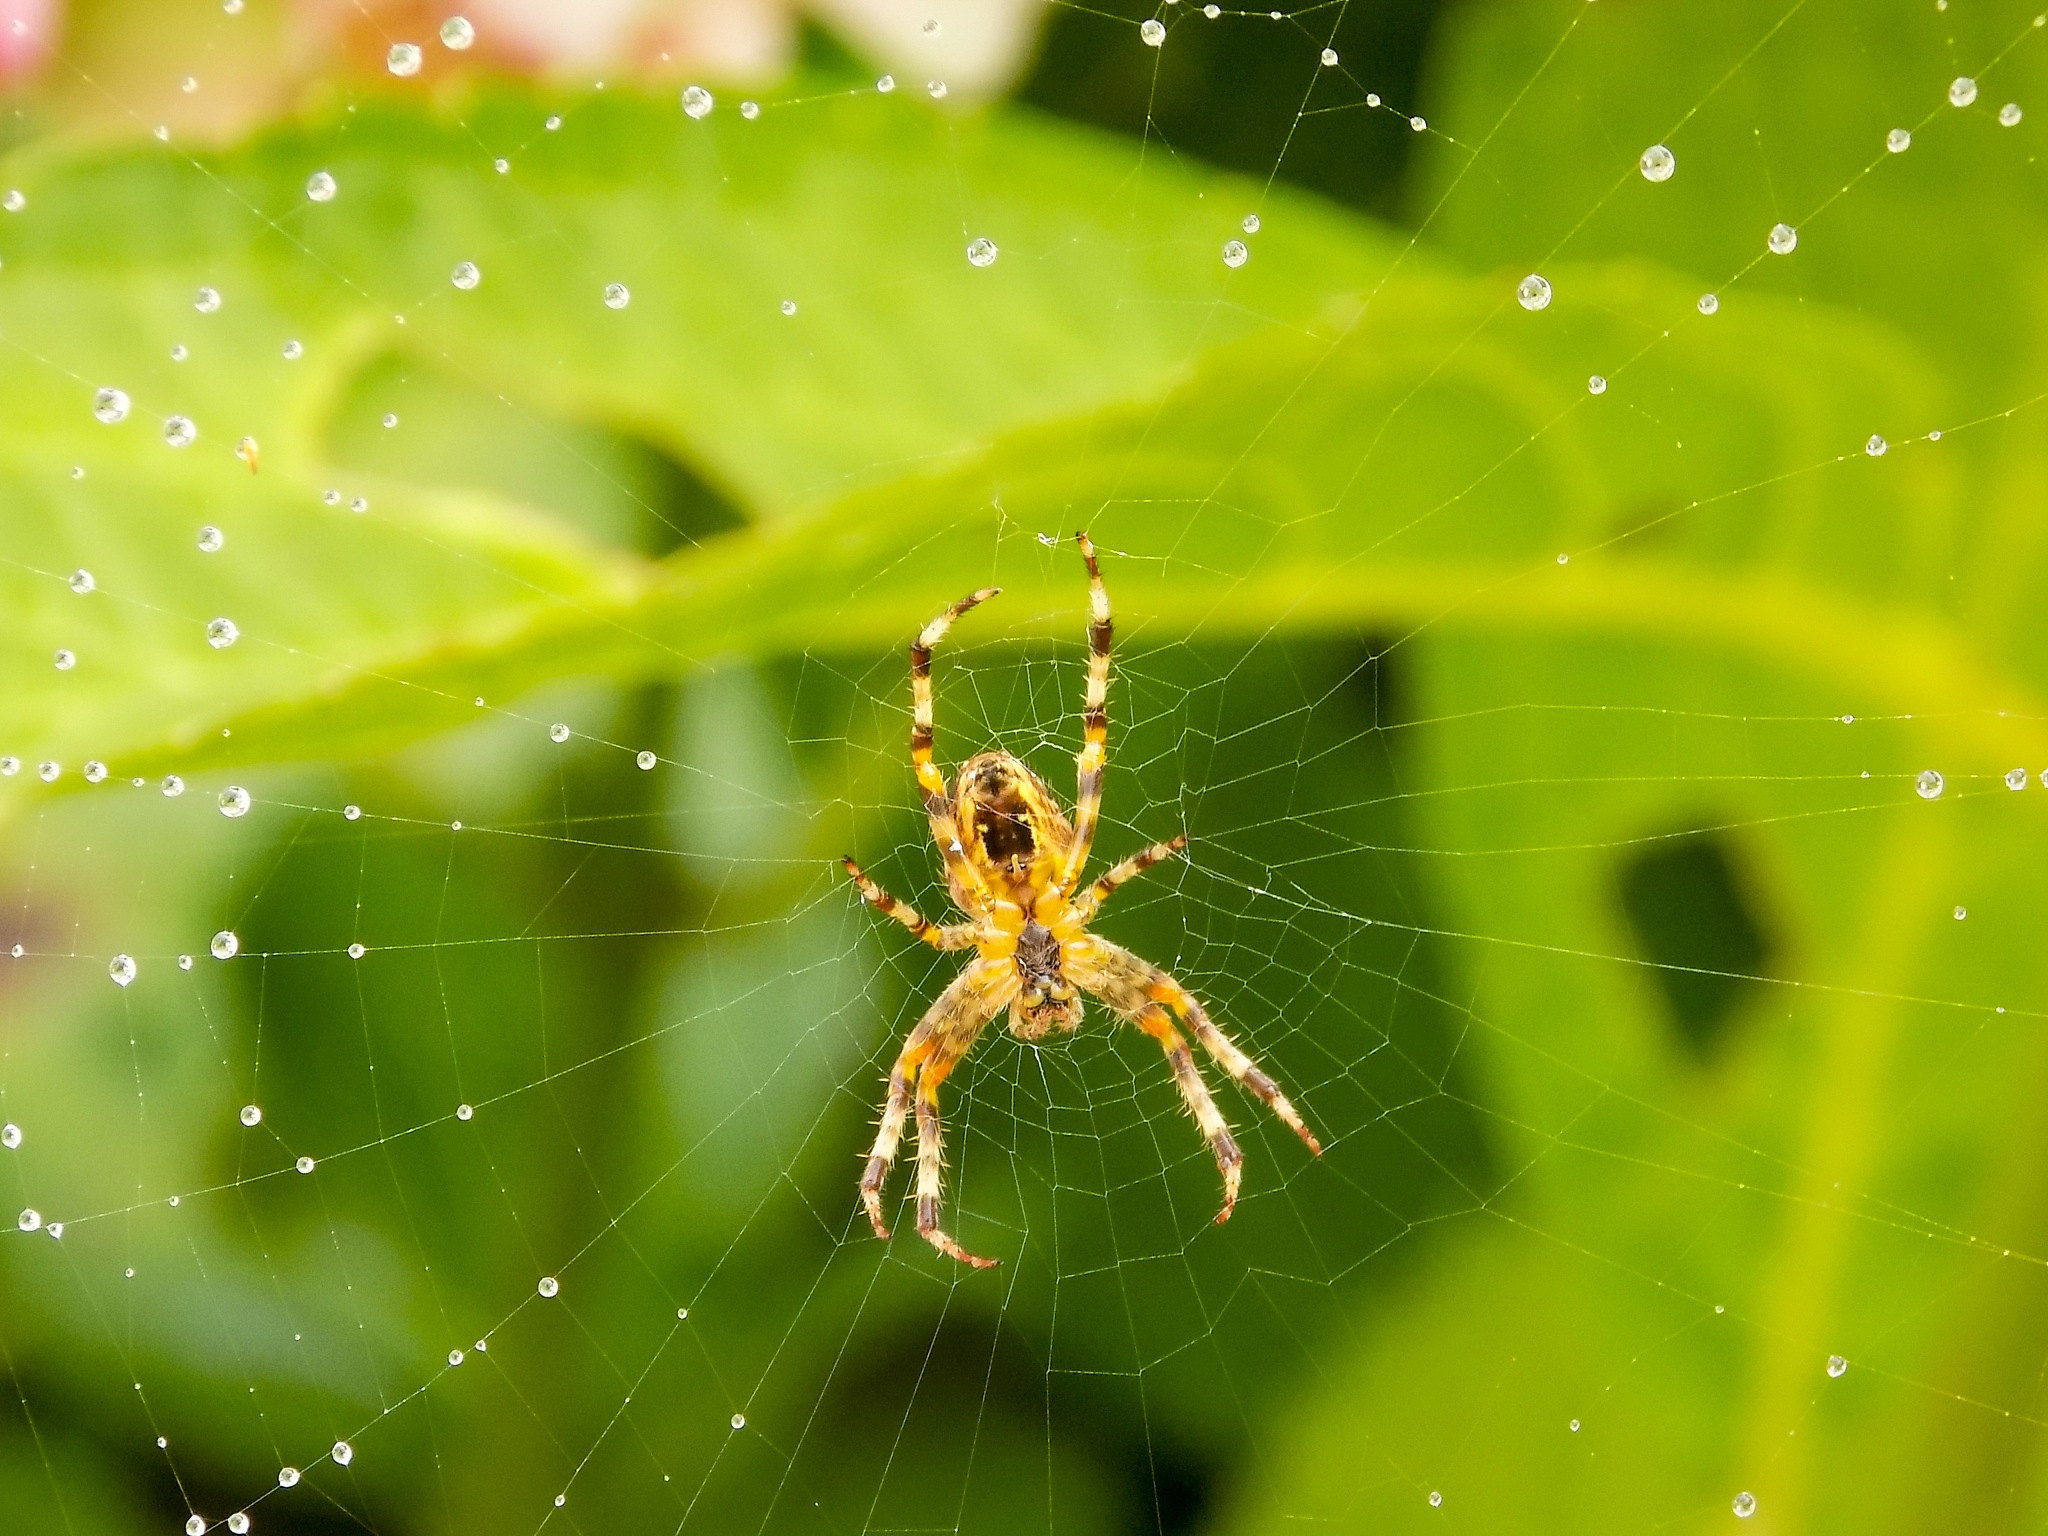 Itsy Bitsy Spider by Steve Rowe